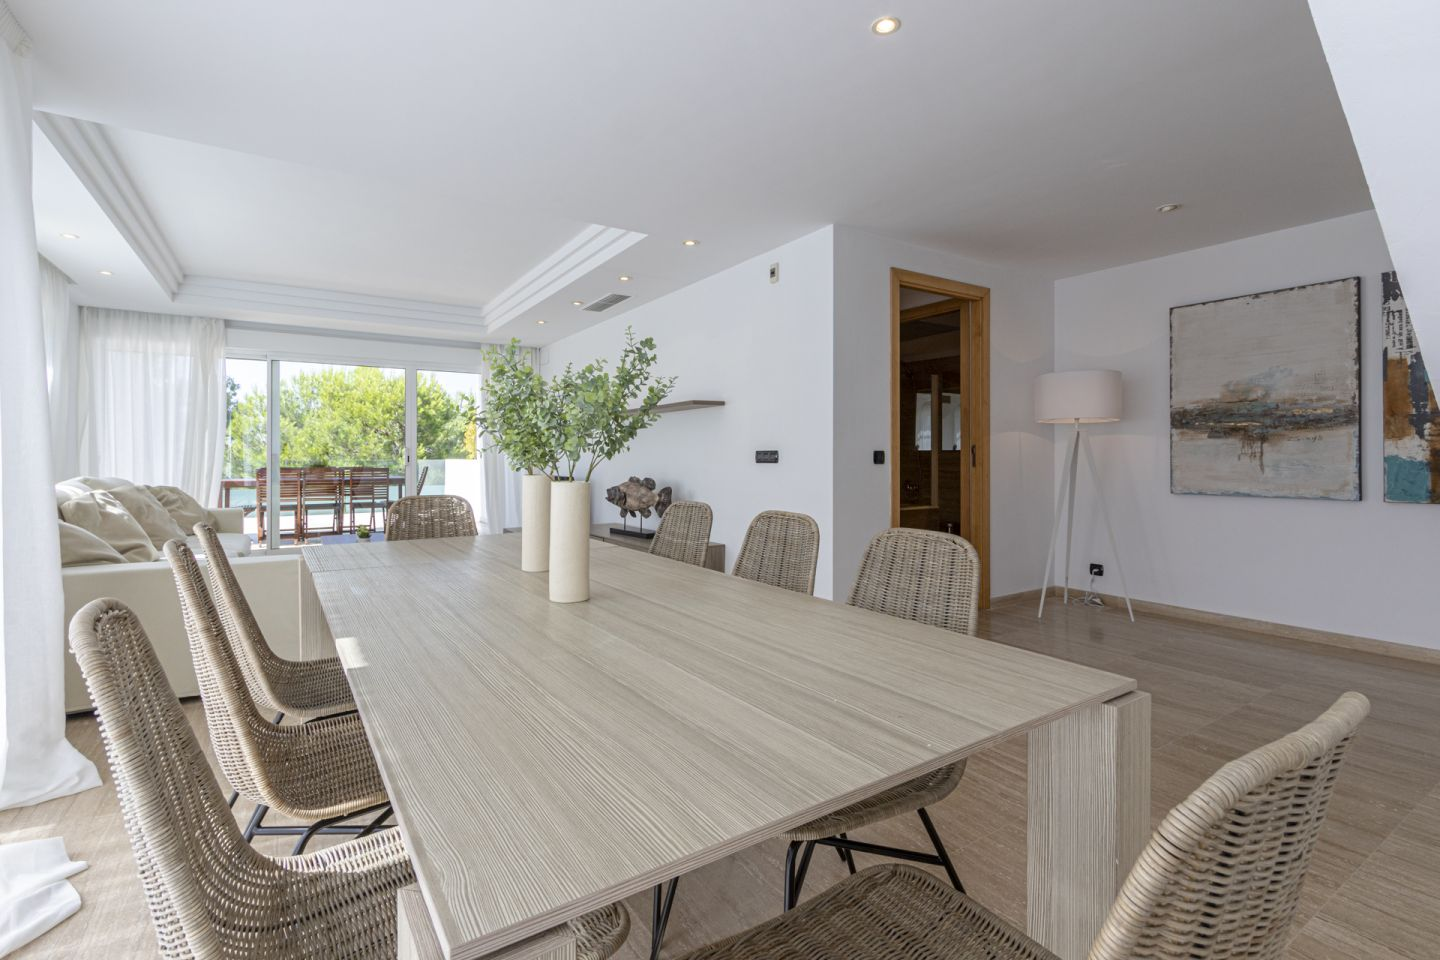 4 Bed Penthouse for sale in PUERTO POLLENSA 4